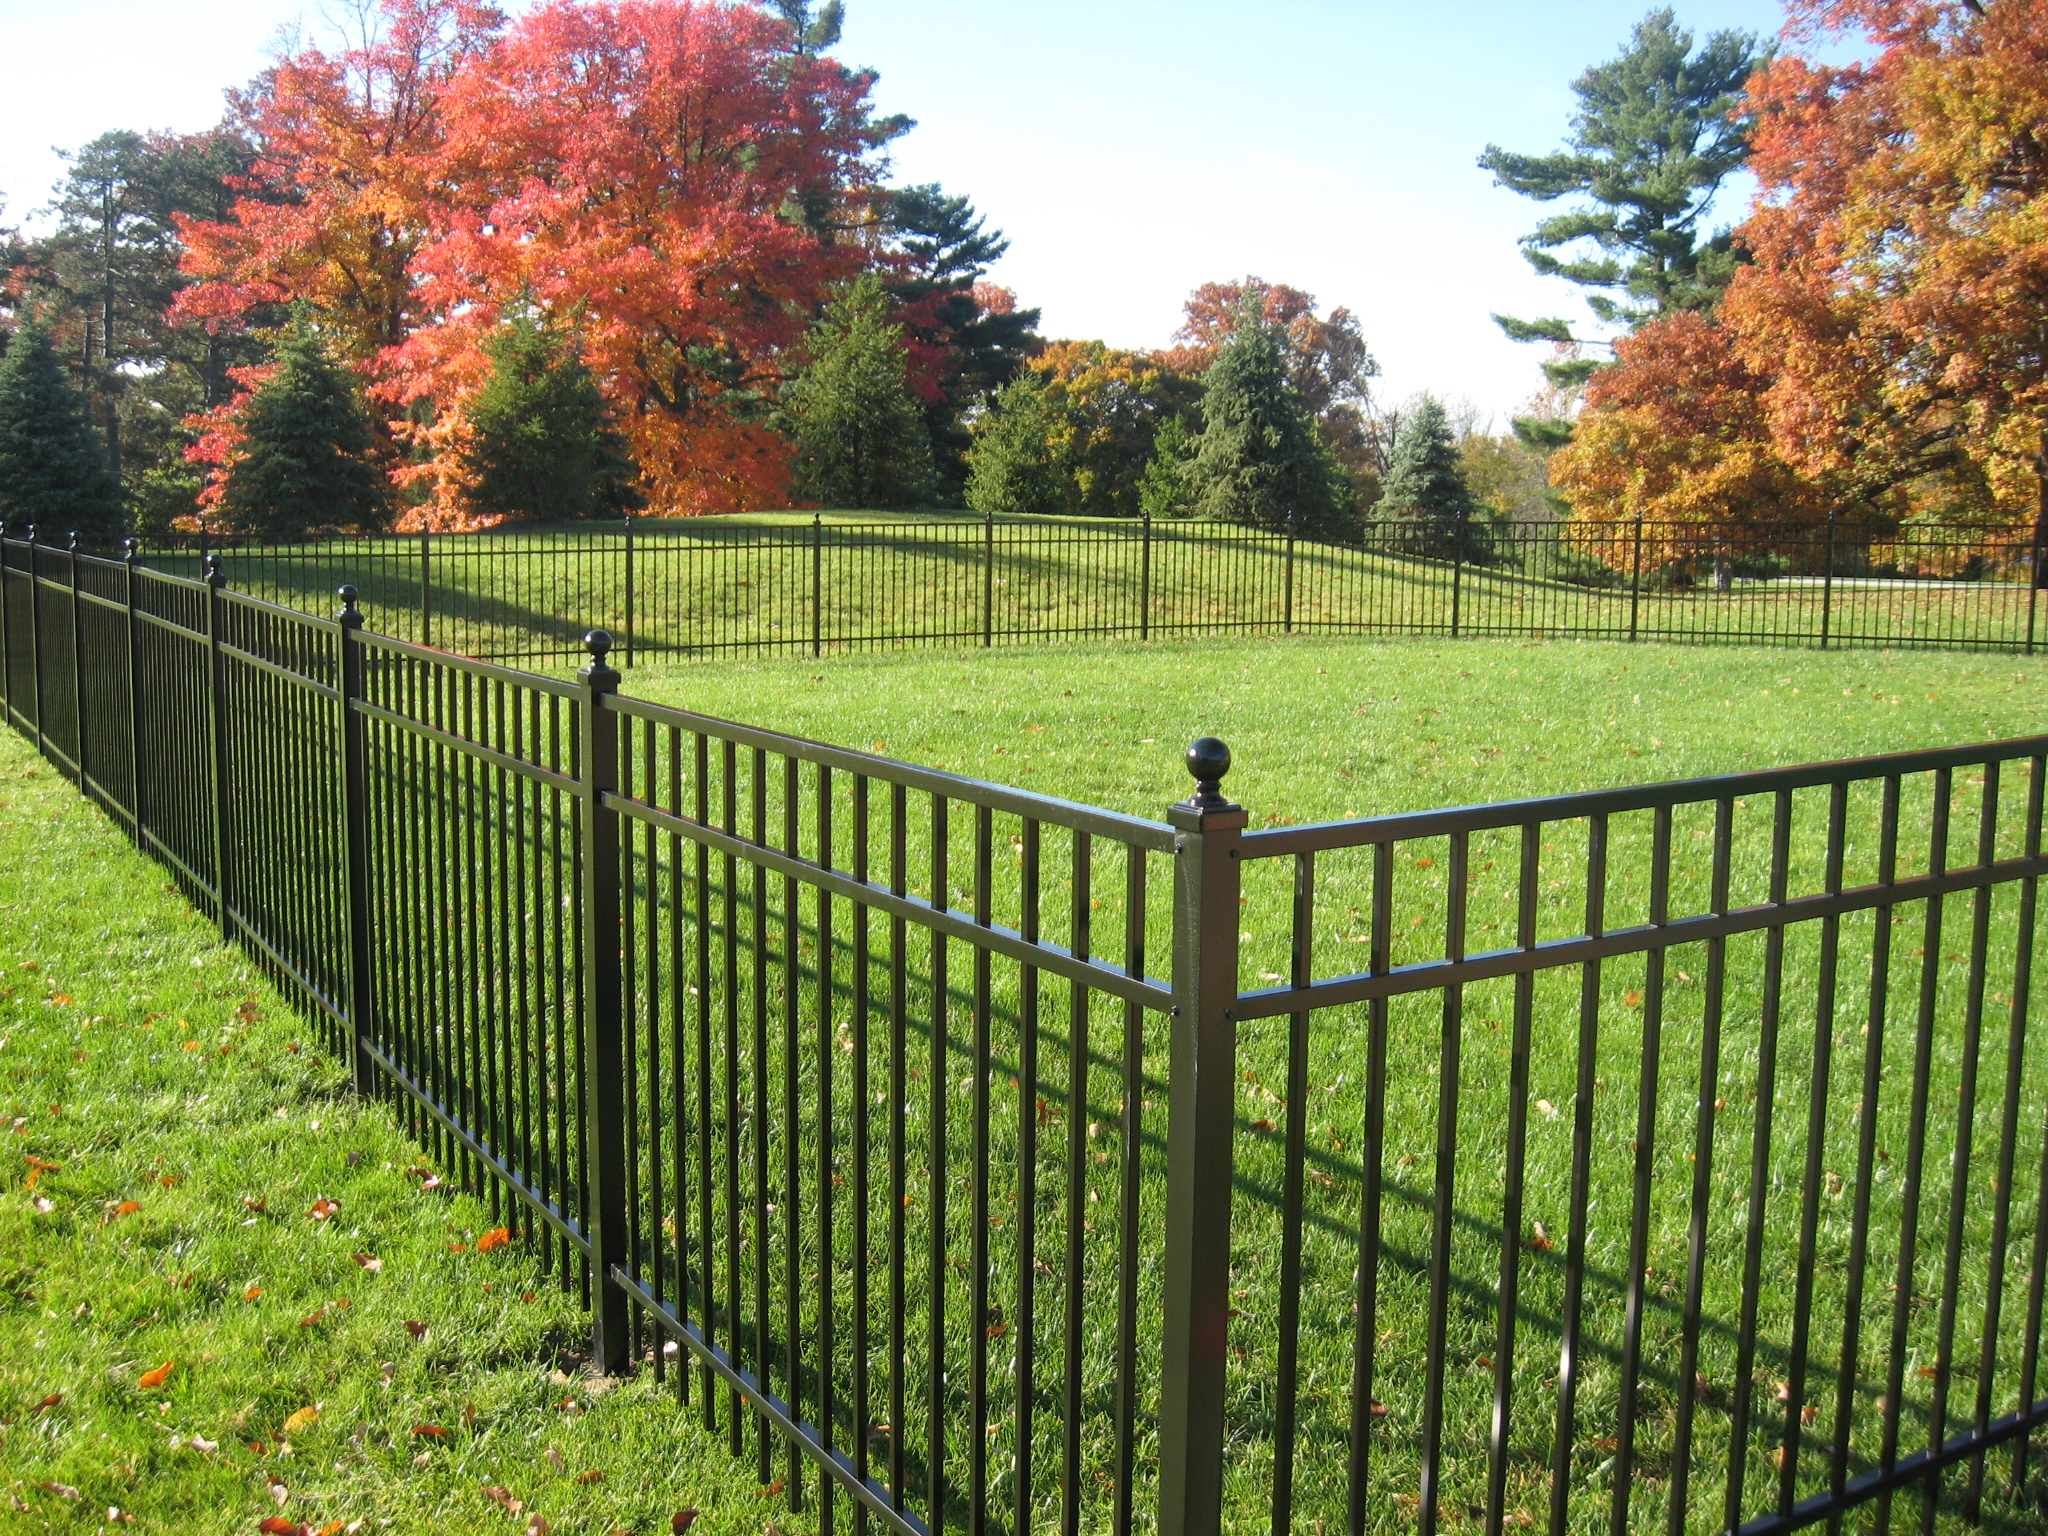 Pioneer Fence Co Milford Oh 45150 Angie S List